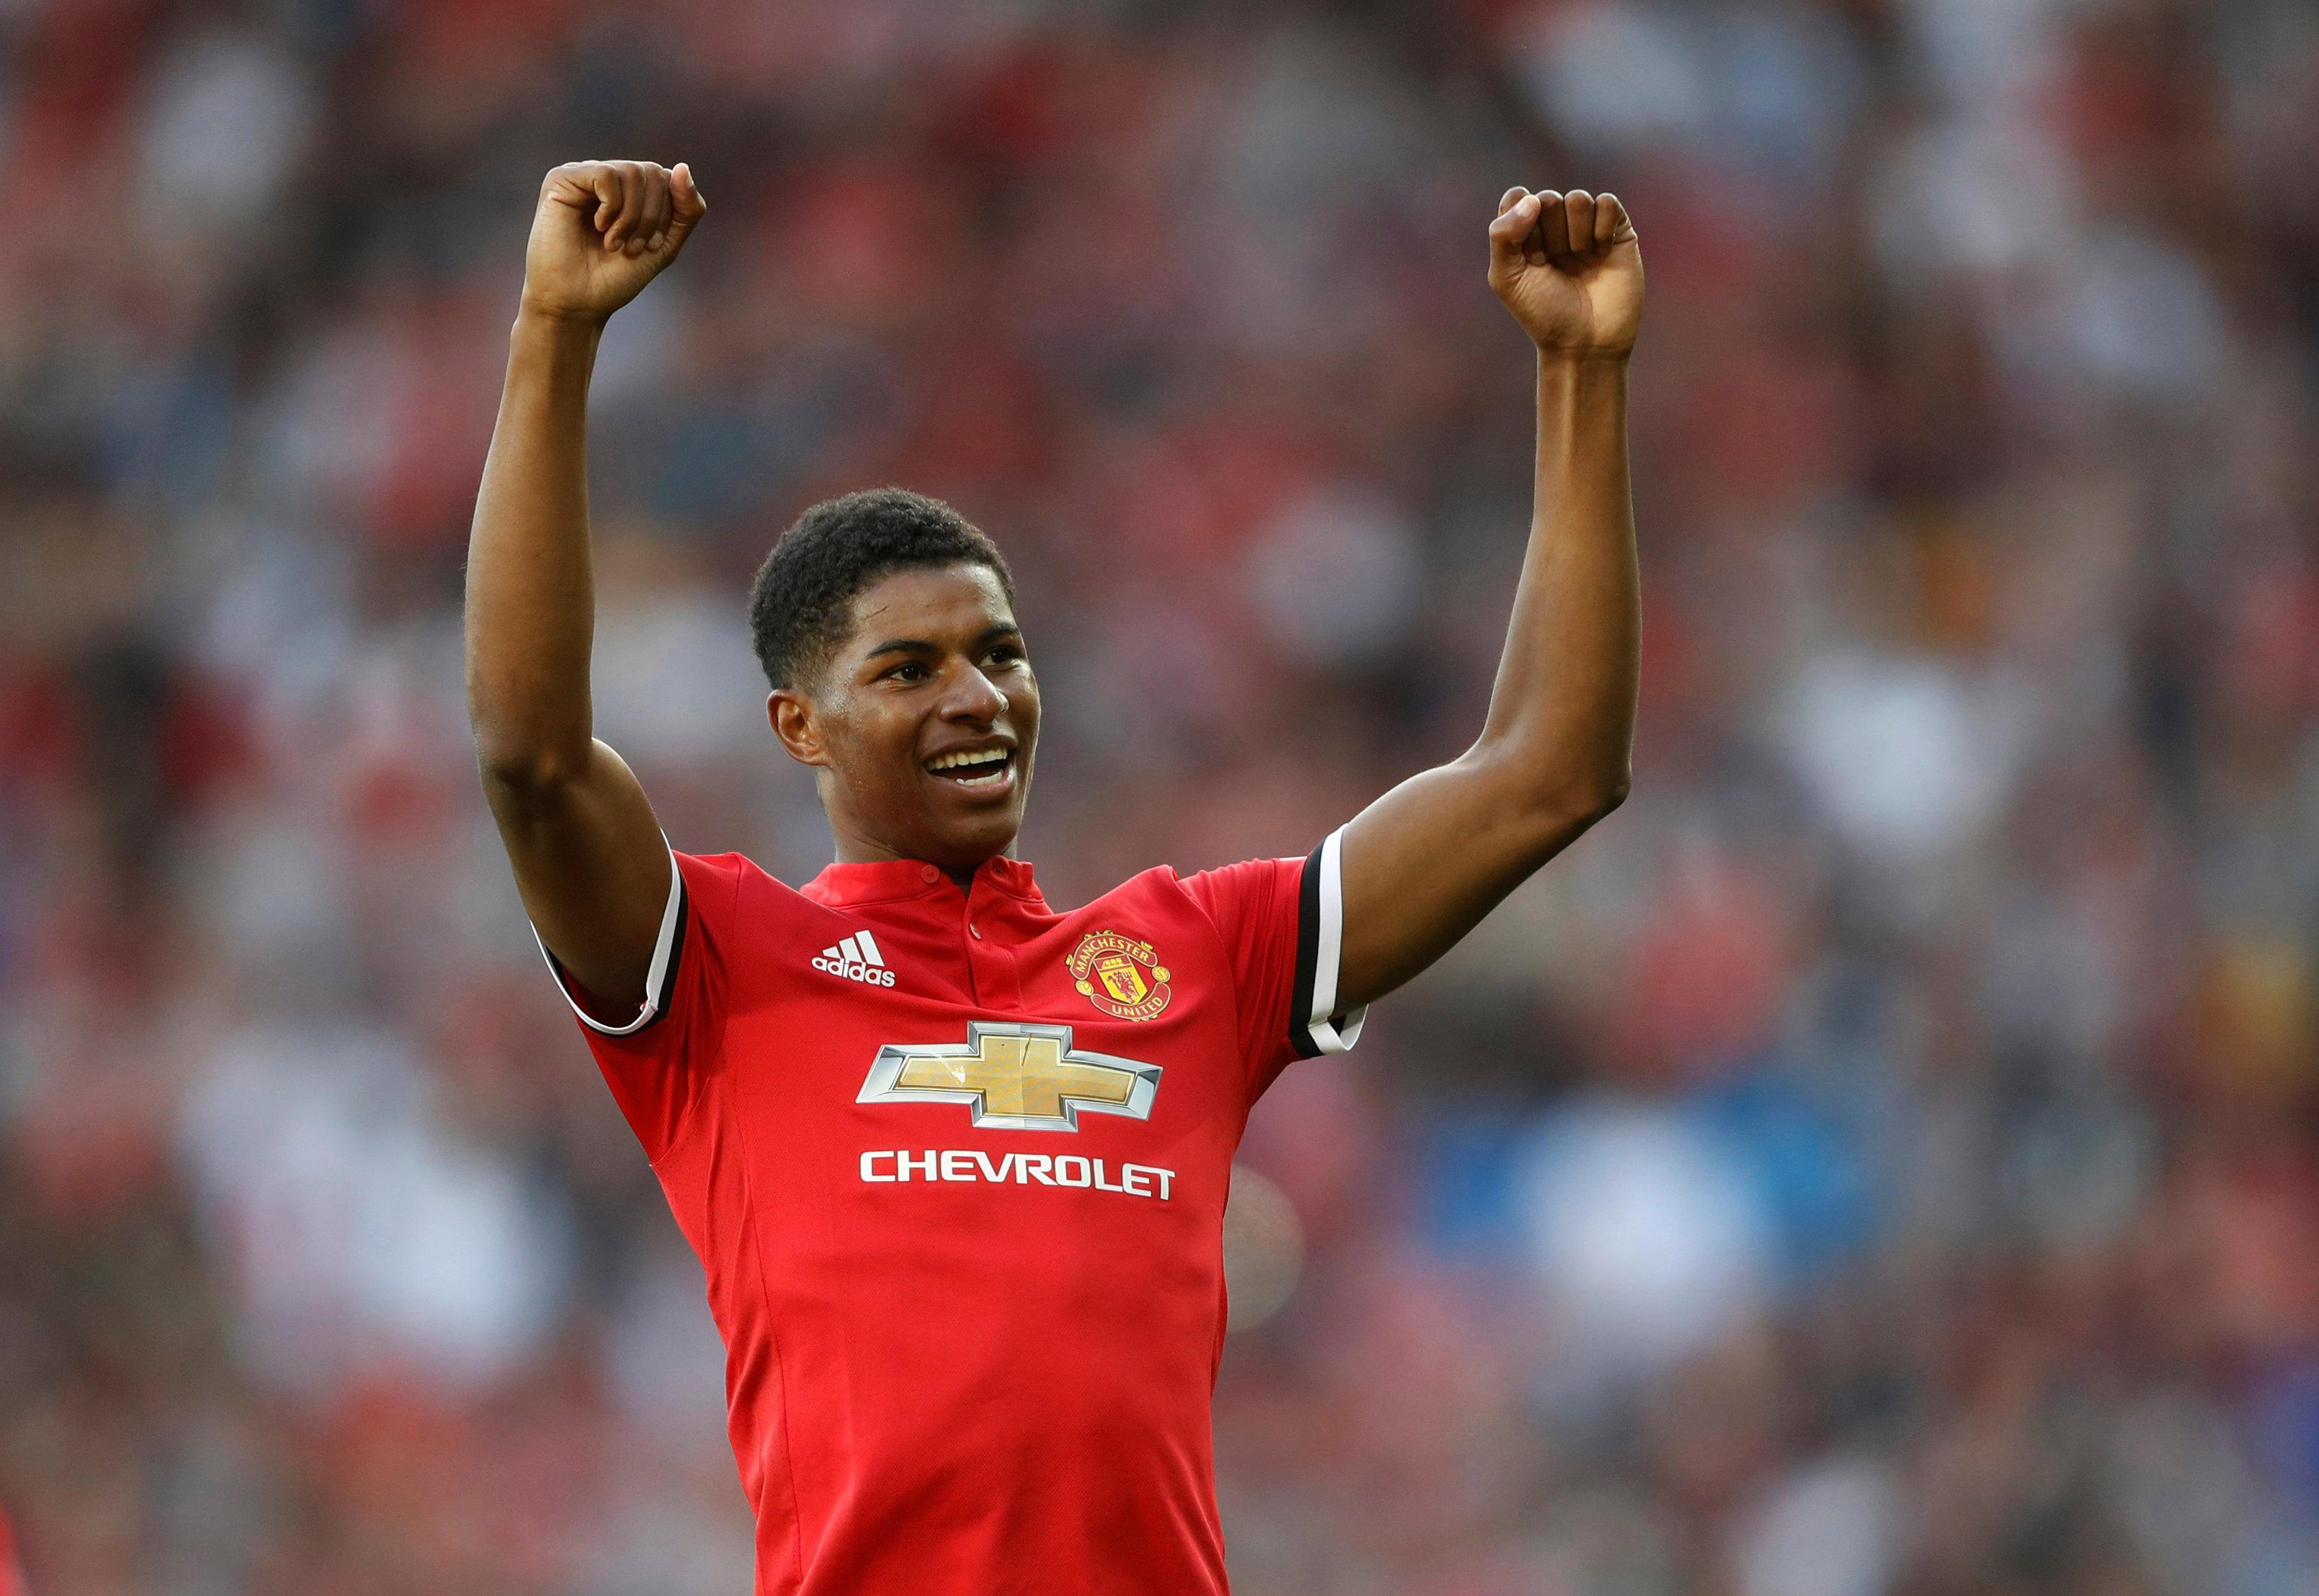 Marcus Rashford has been a key home-grown cog for Man United since his emergence